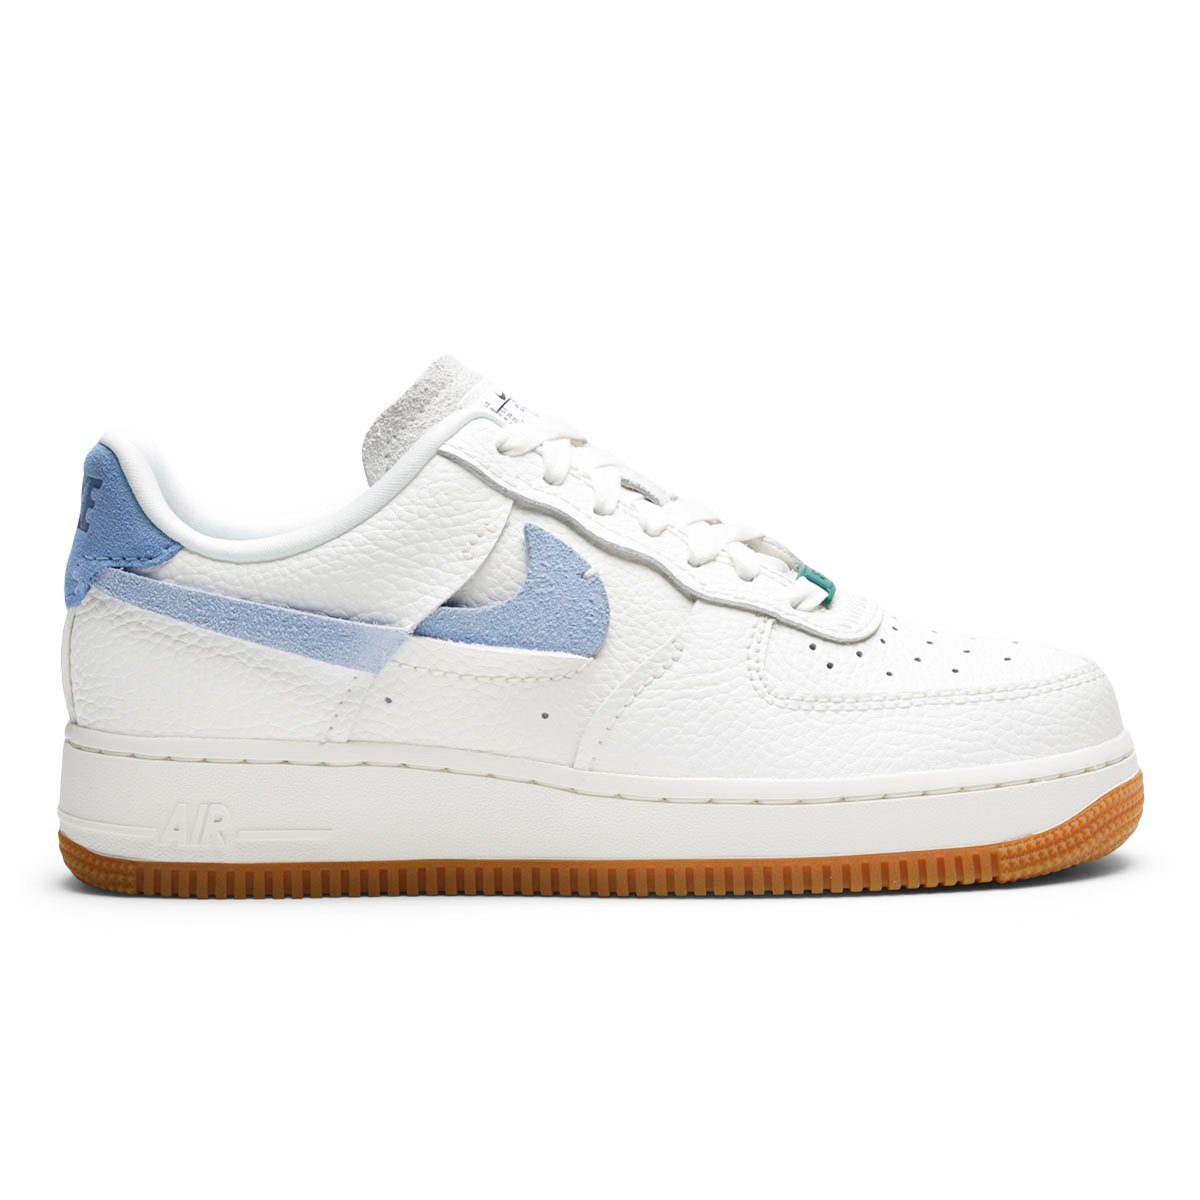 Nike Shoes WOMEN'S AIR FORCE 1 '07 LXX